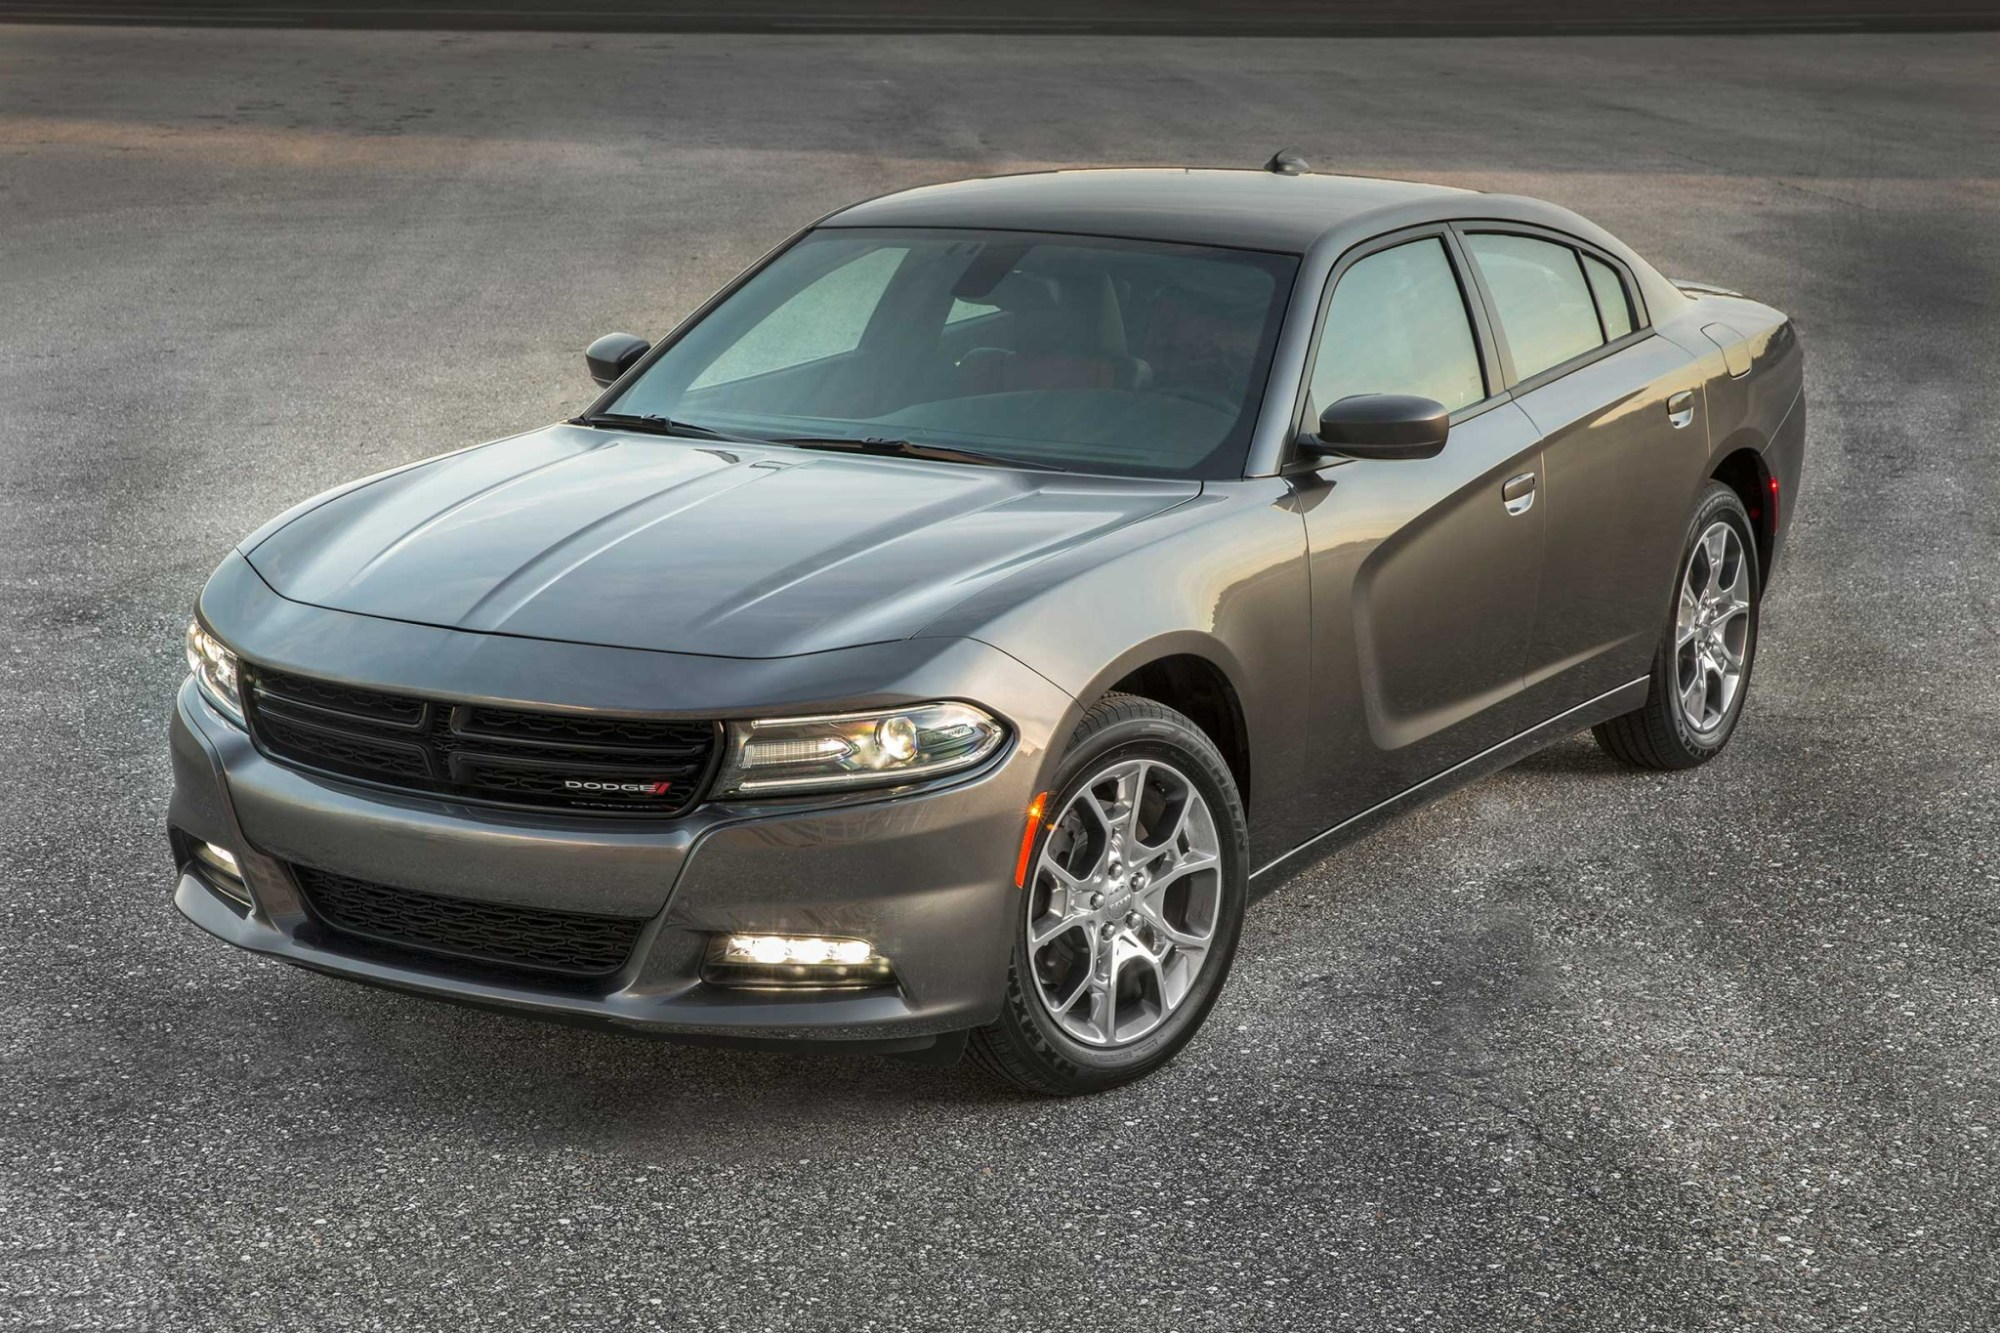 hight resolution of 2007 dodge charger fuel filter price